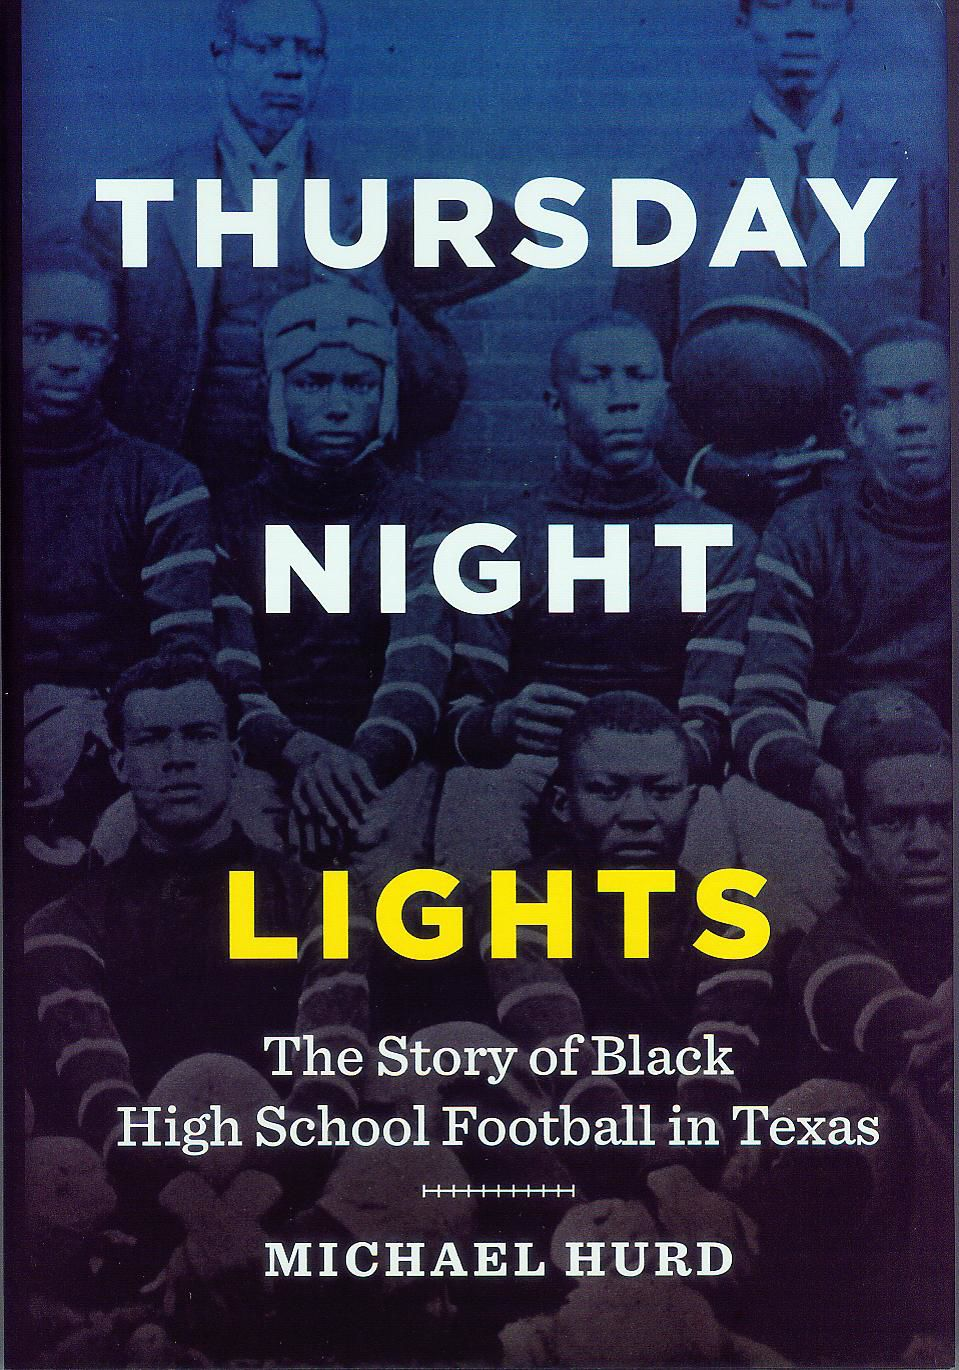 TEXAS READS: 'Thursday Night Lights'